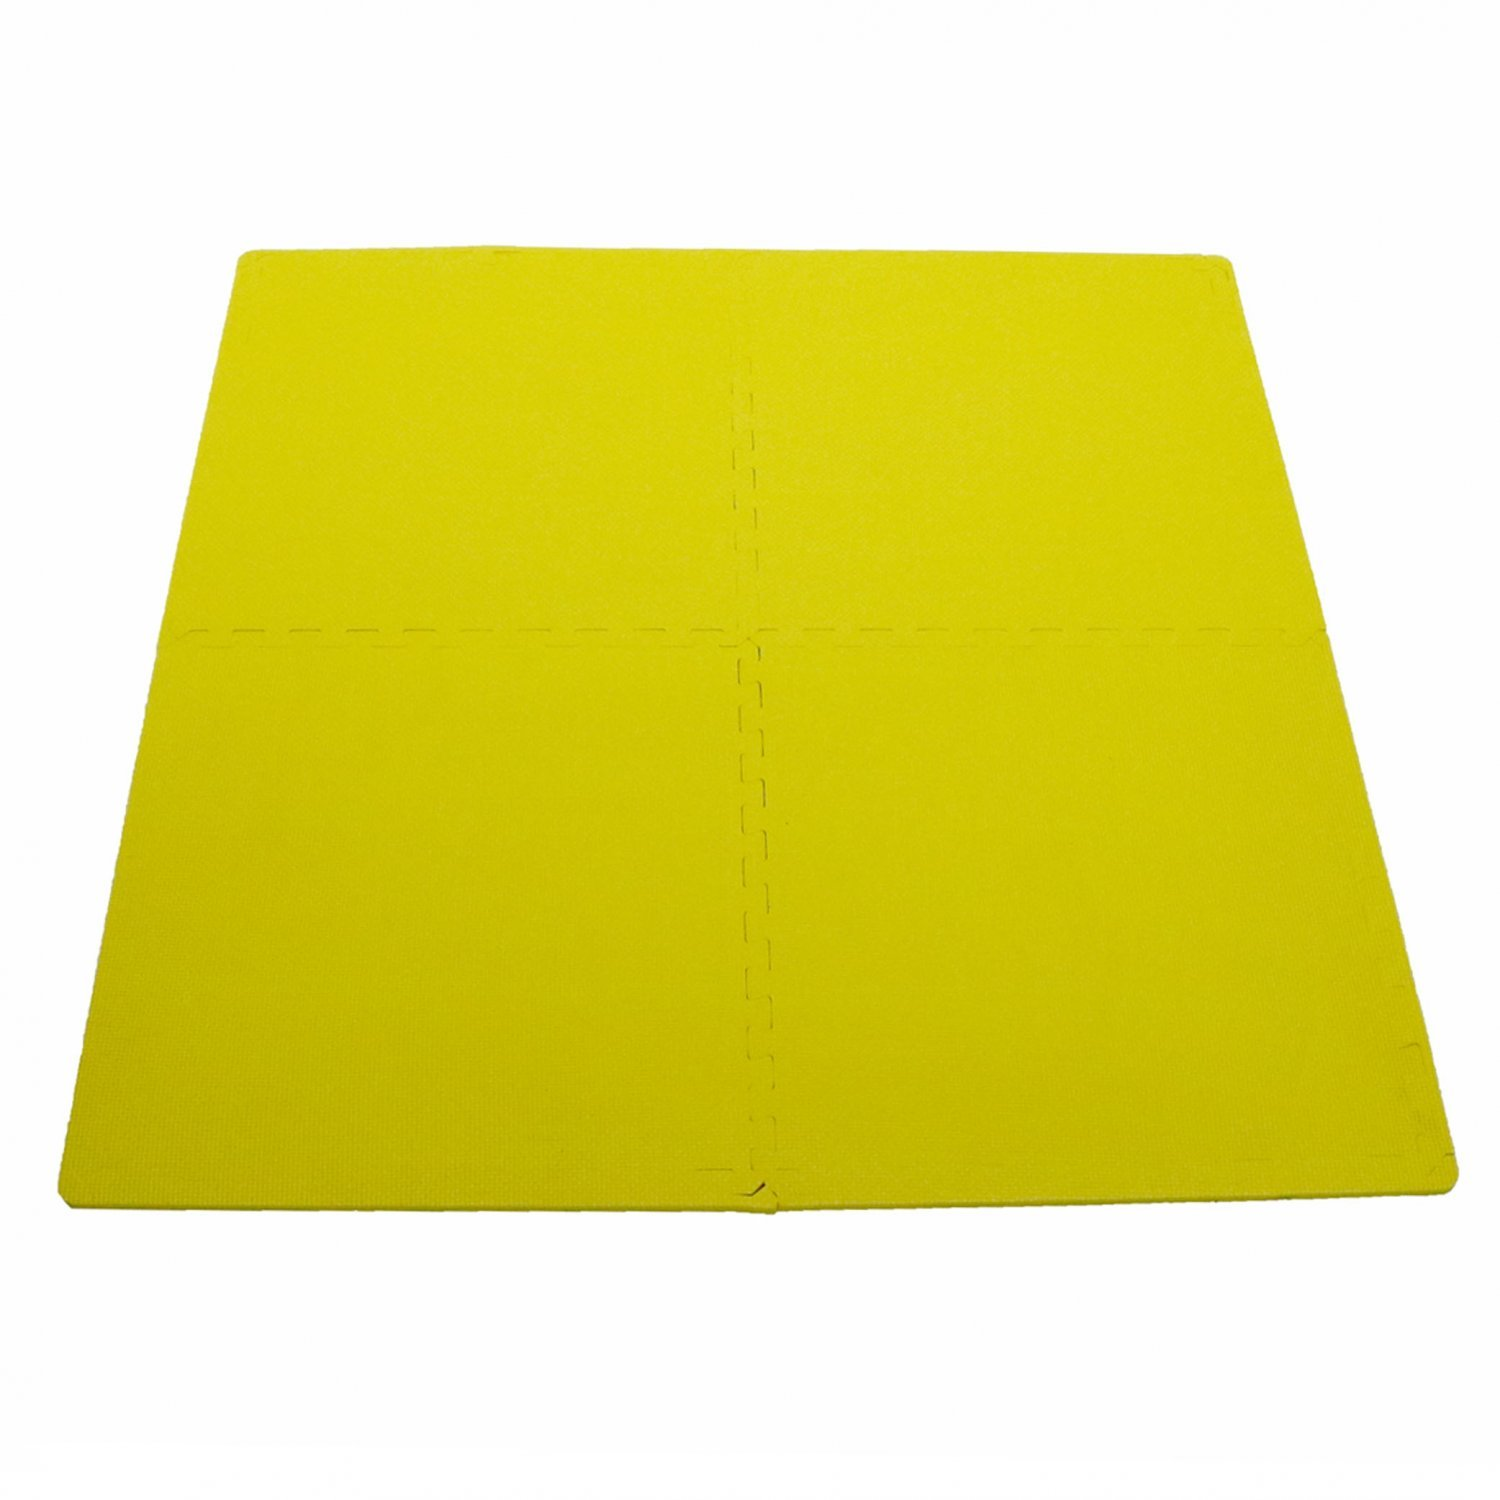 64 SQ FT Interlocking EVA Soft Foam Exercise Floor Play Mats